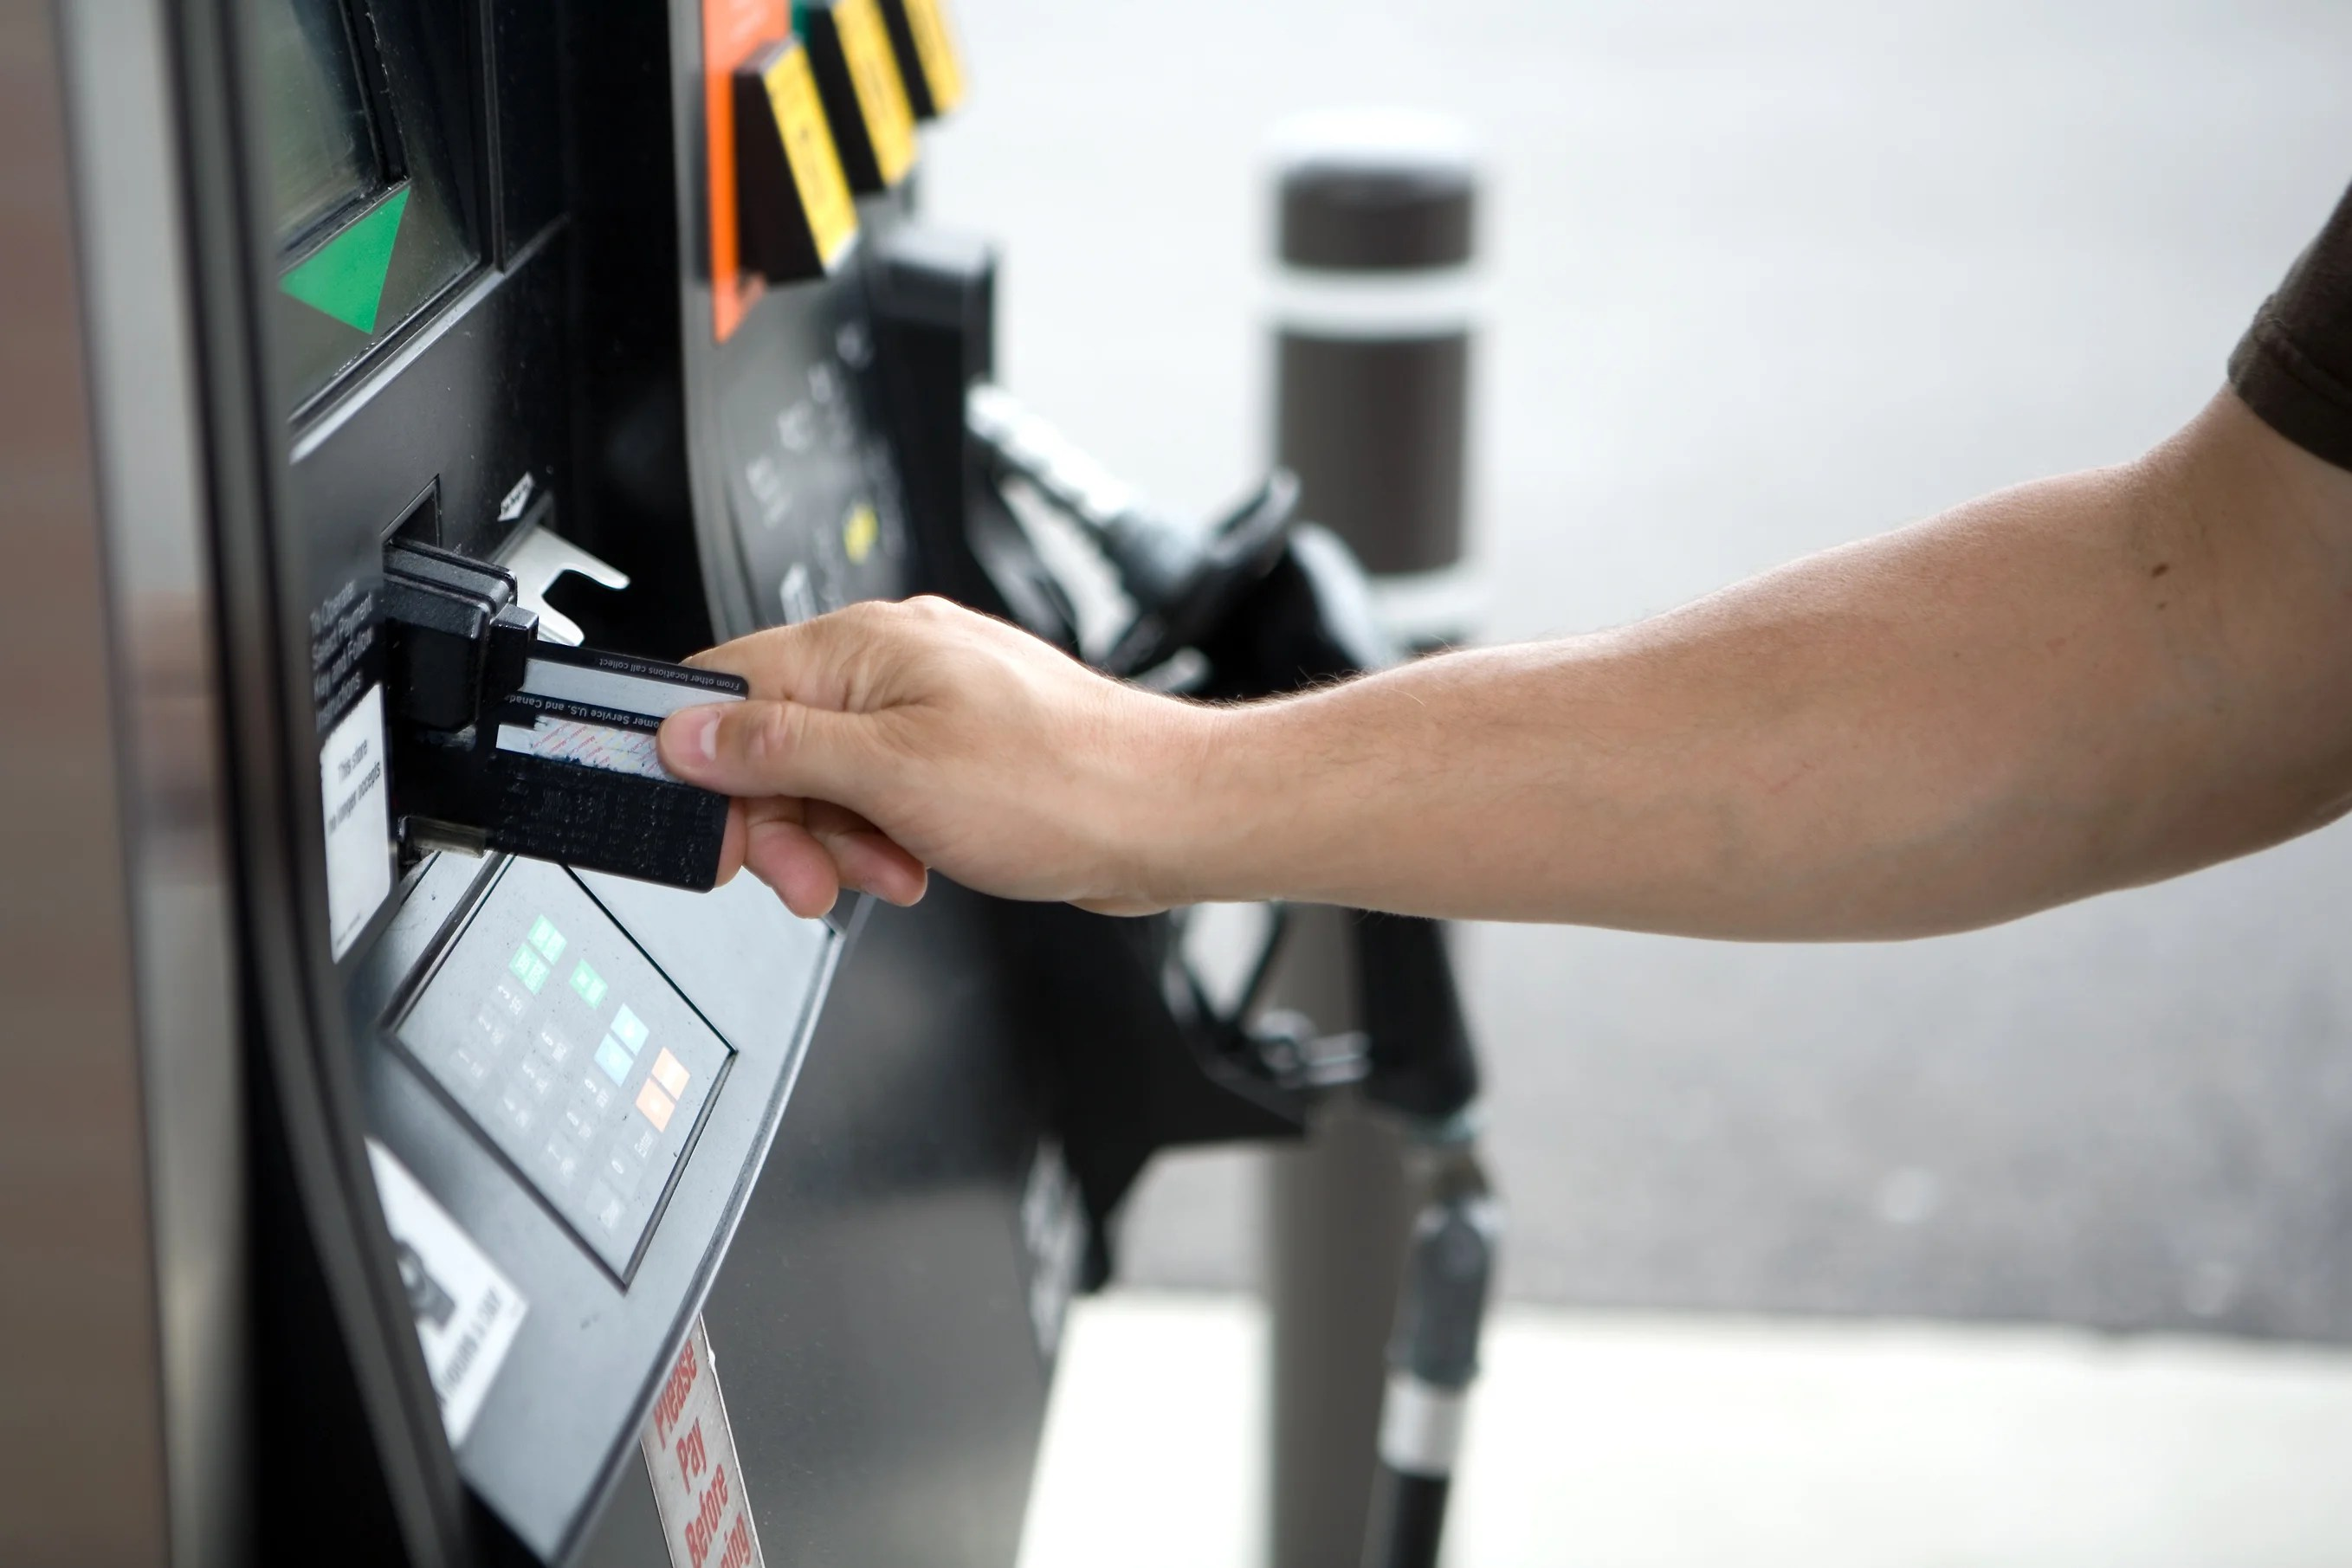 5 Ways to Protect Yourself from Credit Card Skimmers